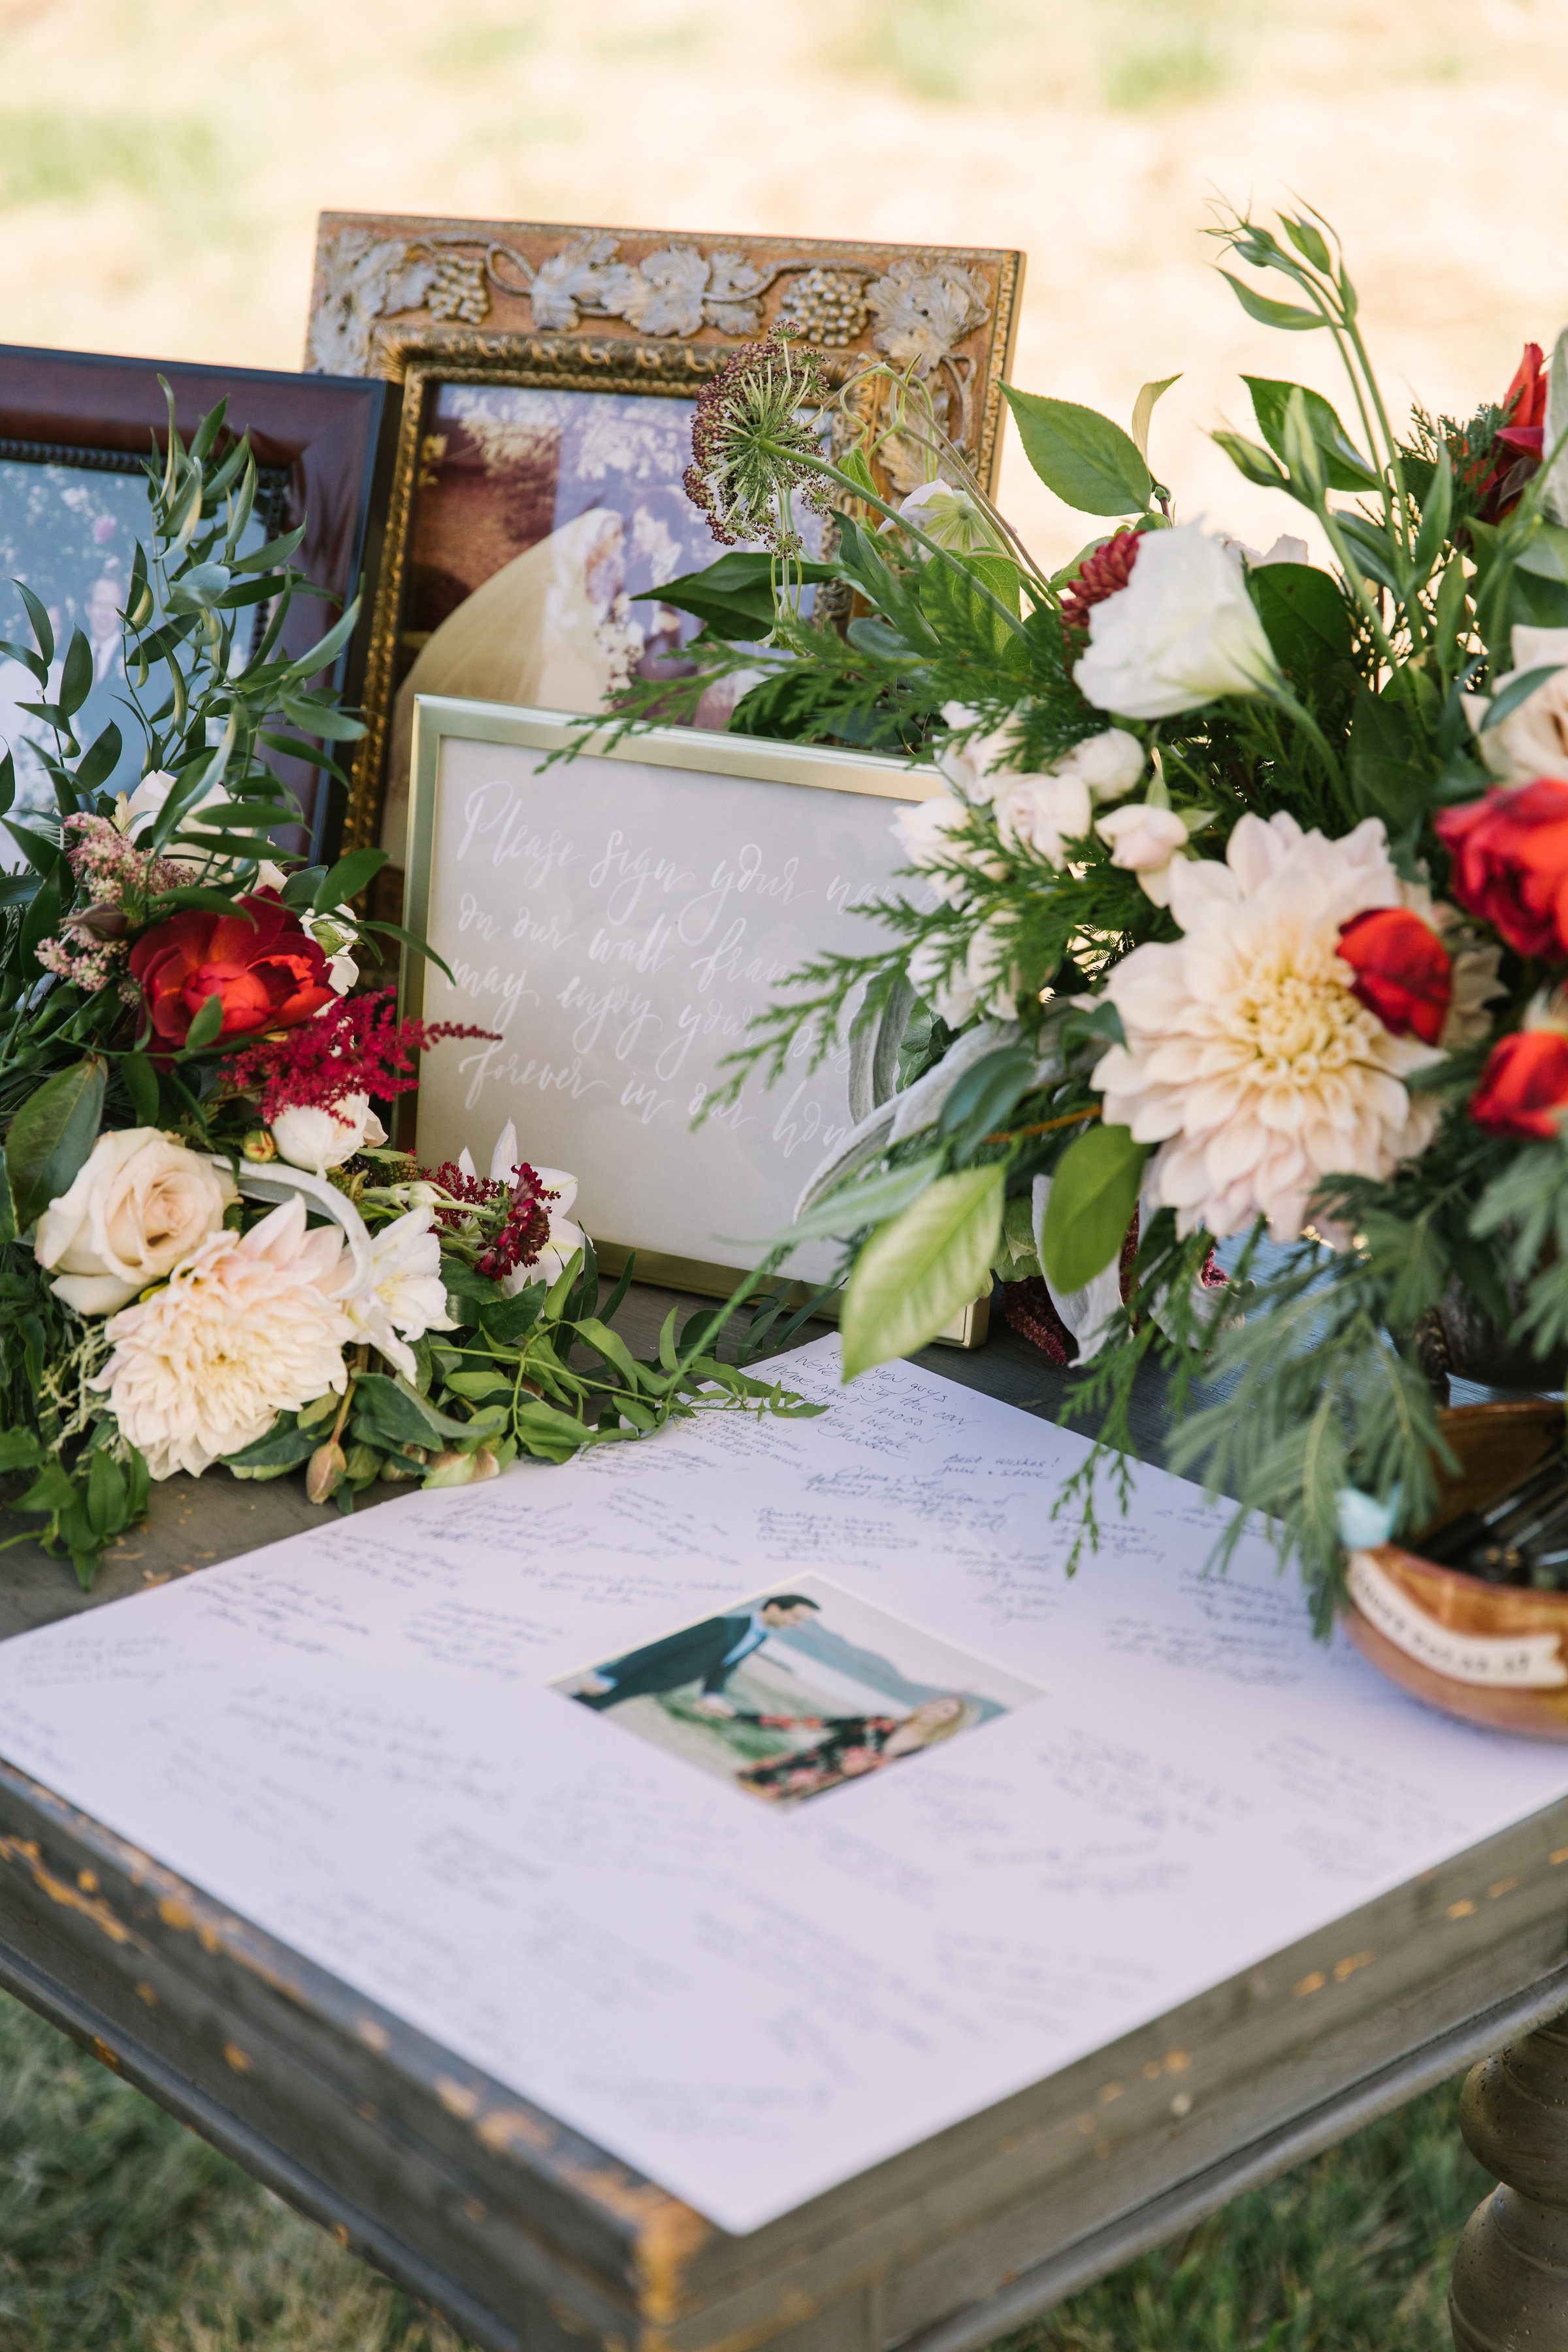 Romantic guestbook flowers by Venn Floral at Olympia's Valley Estate photographed by The Edges.